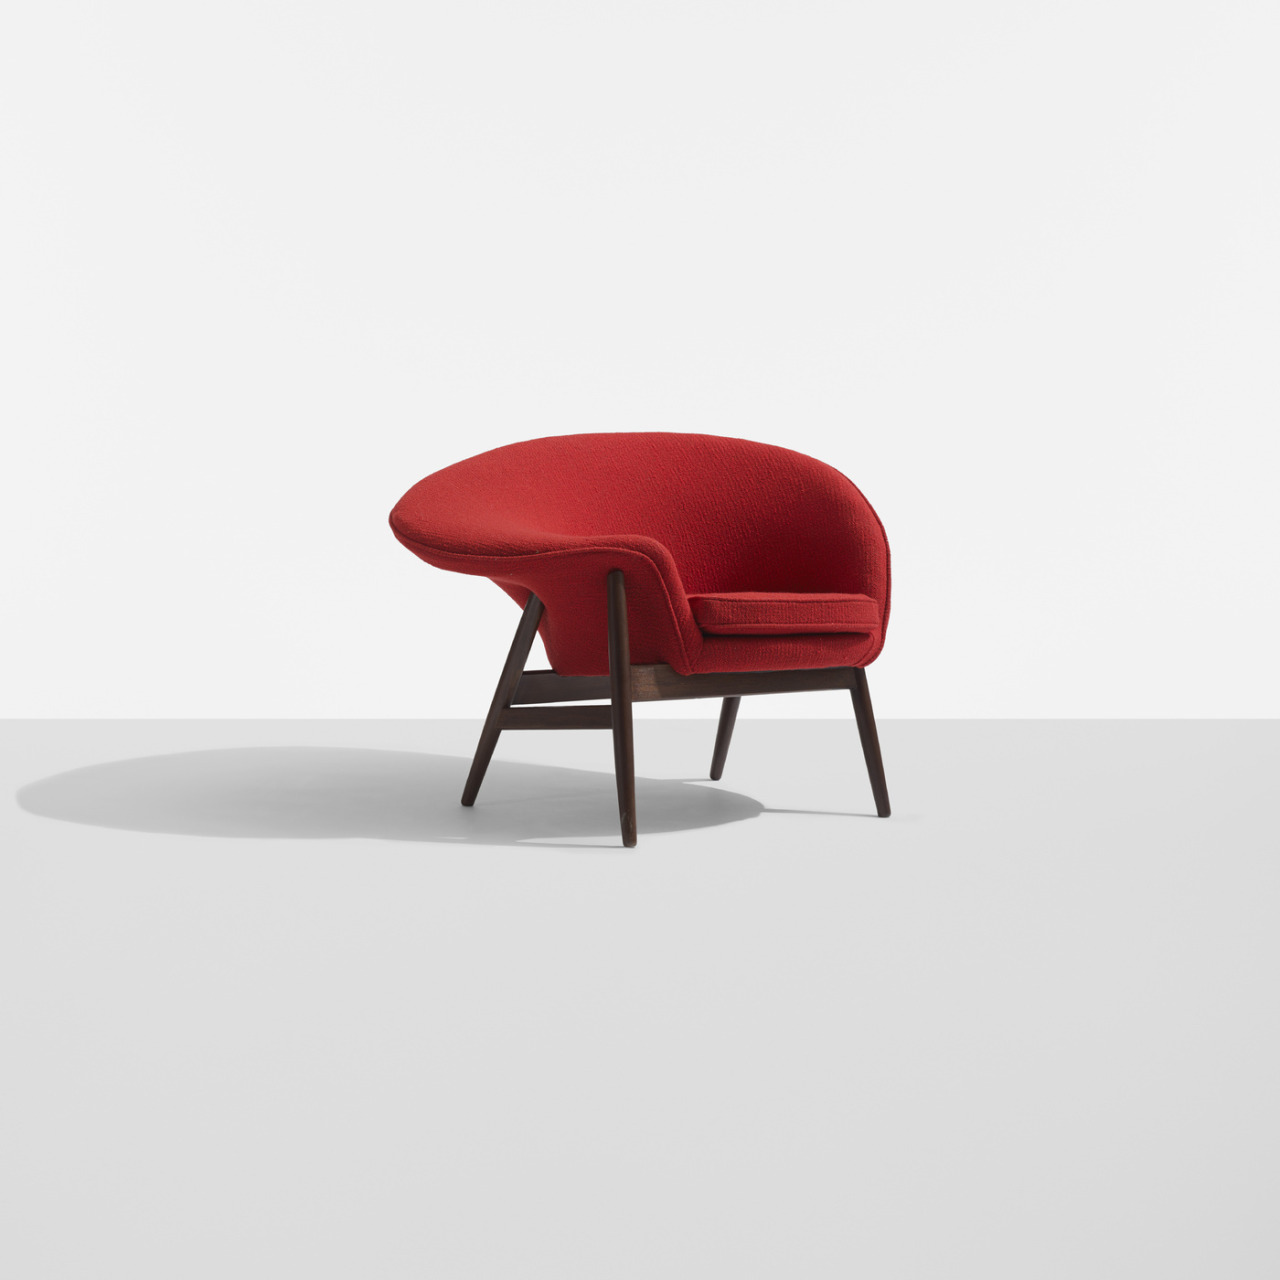 fried egg chair arts and crafts style analog dialog hans olsen